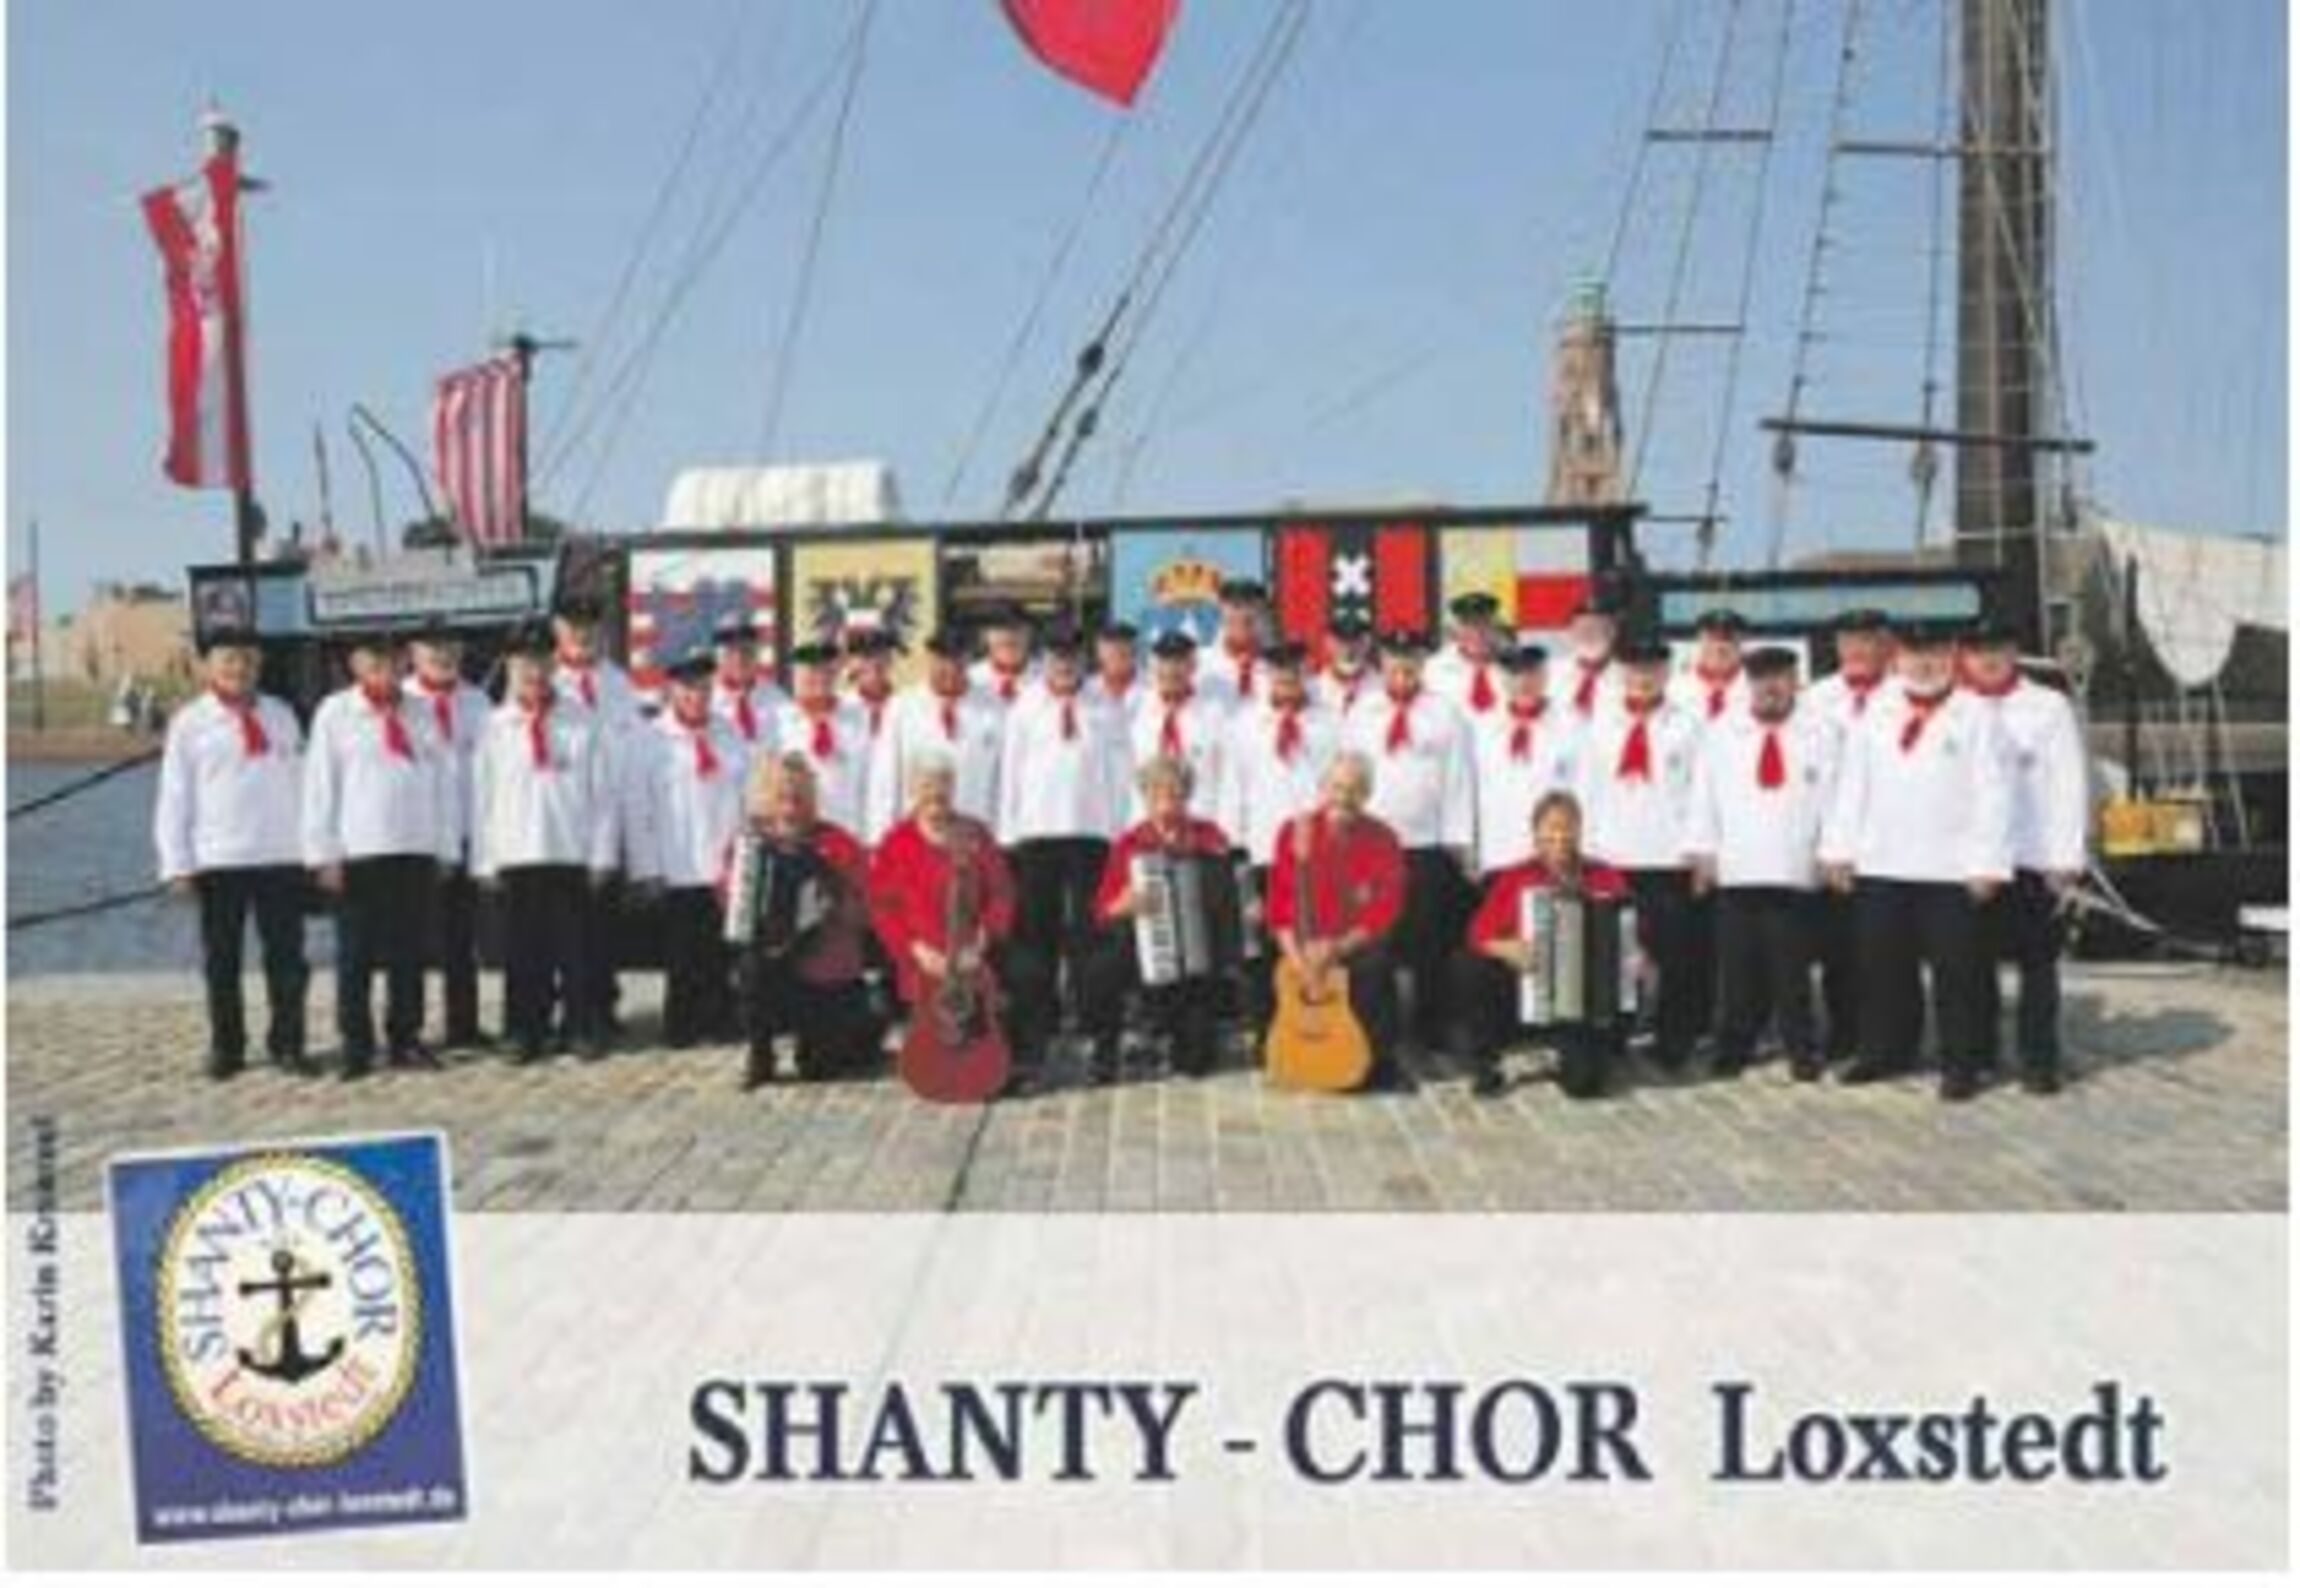 Shanty Chor Loxstedt